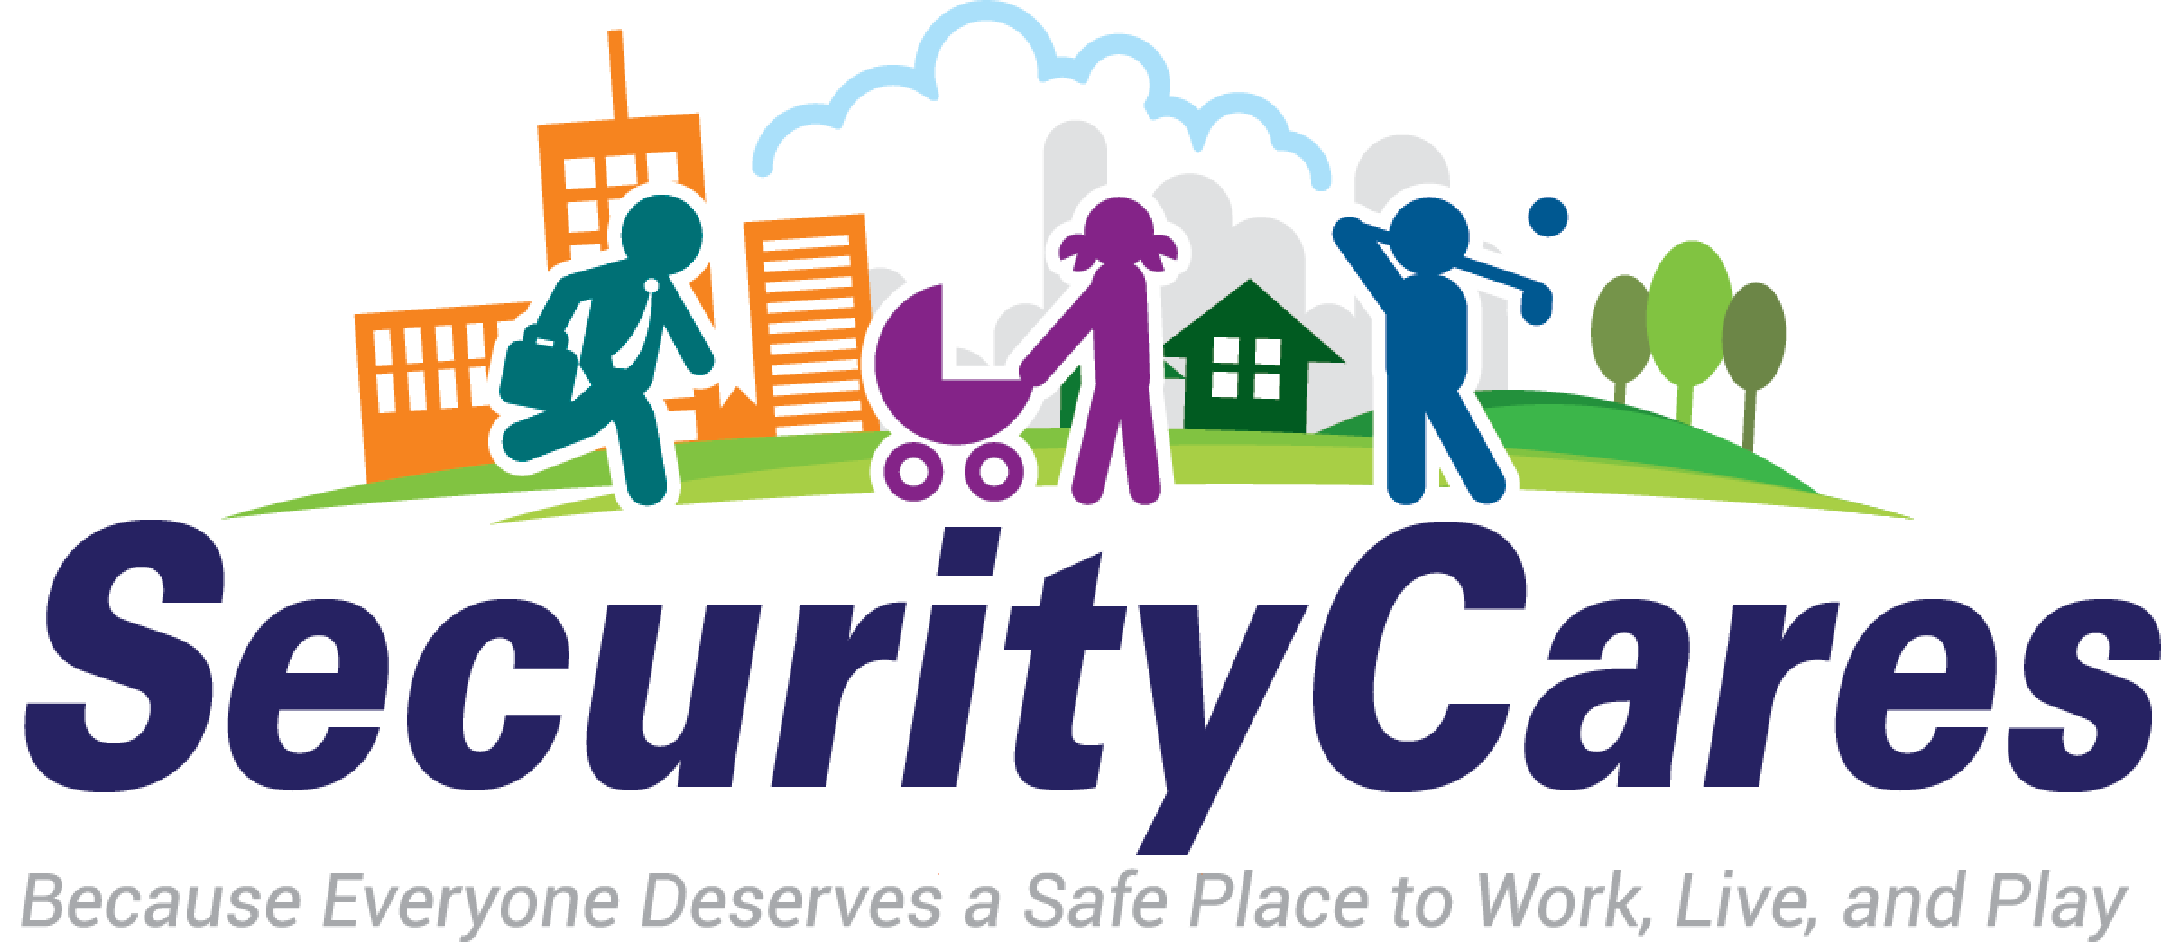 Making the safer with. Community clipart community outreach